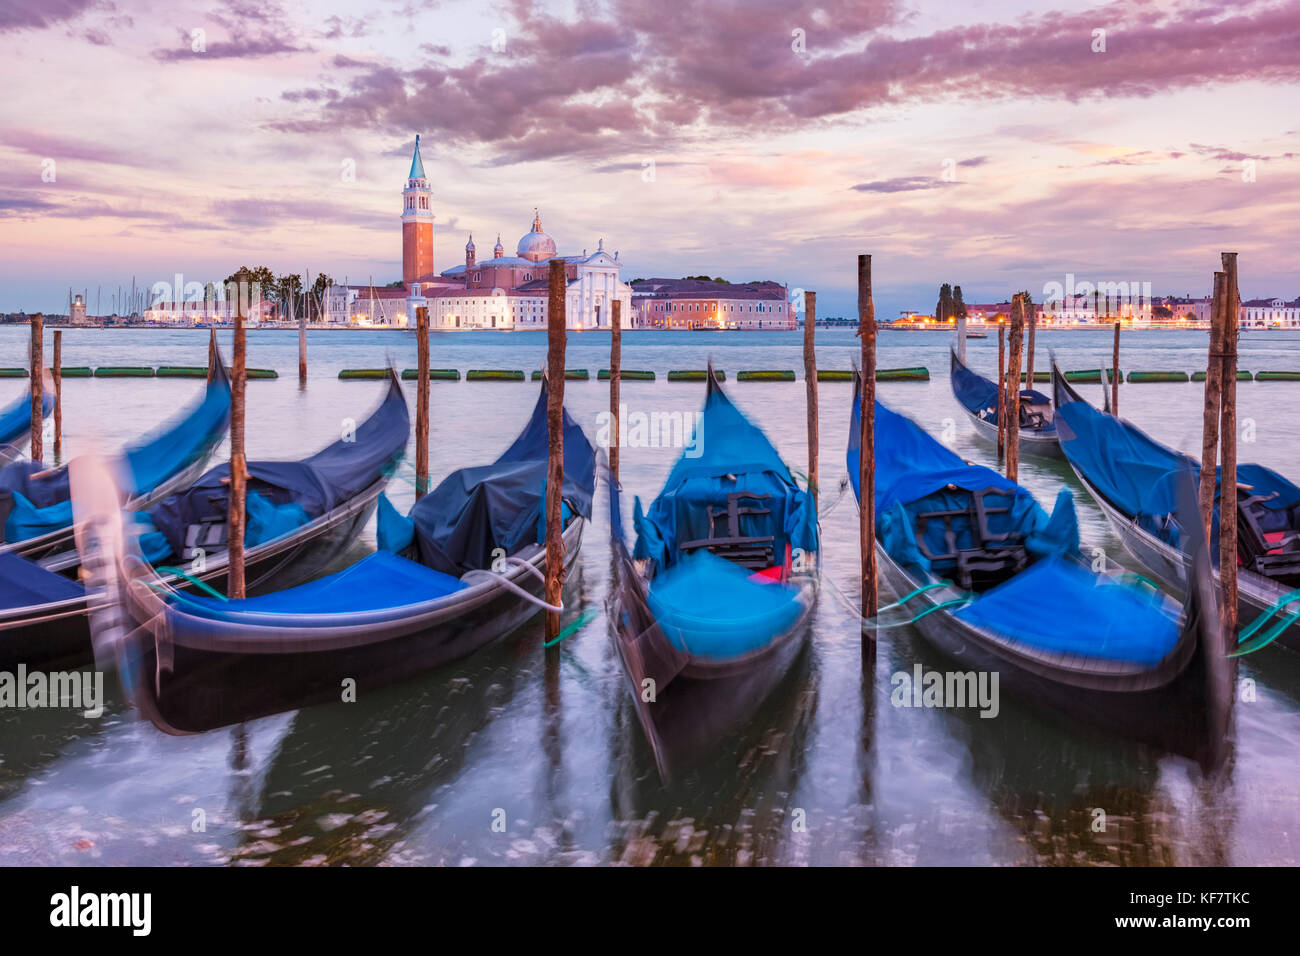 Gondolas Italy venice italy moored gondolas on the Grand Canal Venice opposite the Island of San Giorgio Maggiore - Stock Image